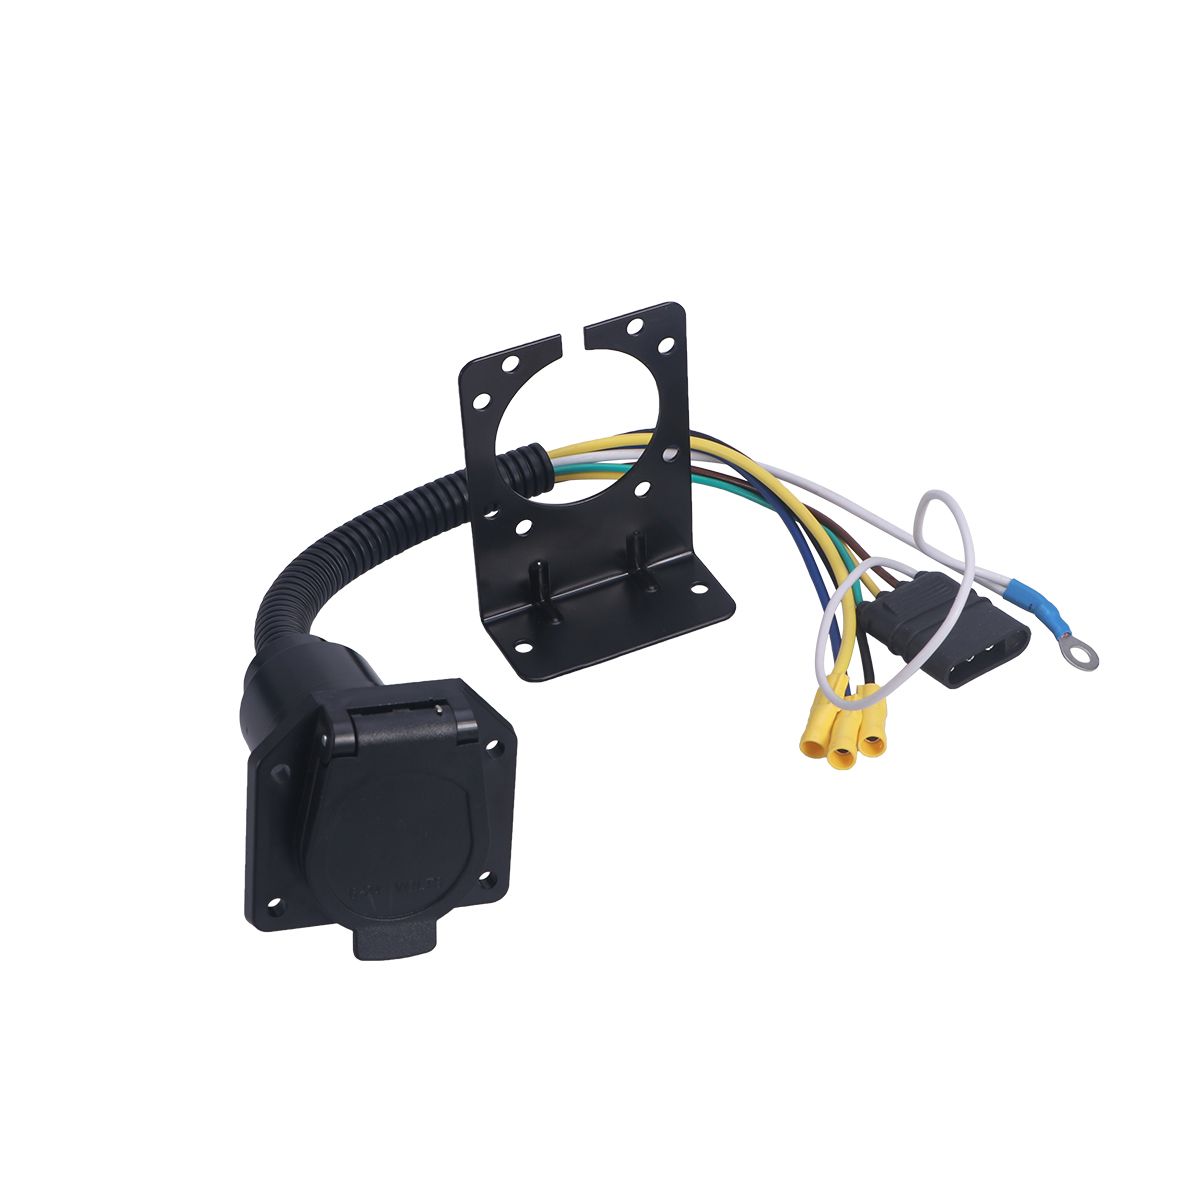 Wiring Mounting Bracket Reveolution Of Diagram Towing Harness Multi Tow Trailer Adapter Kit Connector With Socket Rh Aliexpress Com Aircraft Hitch